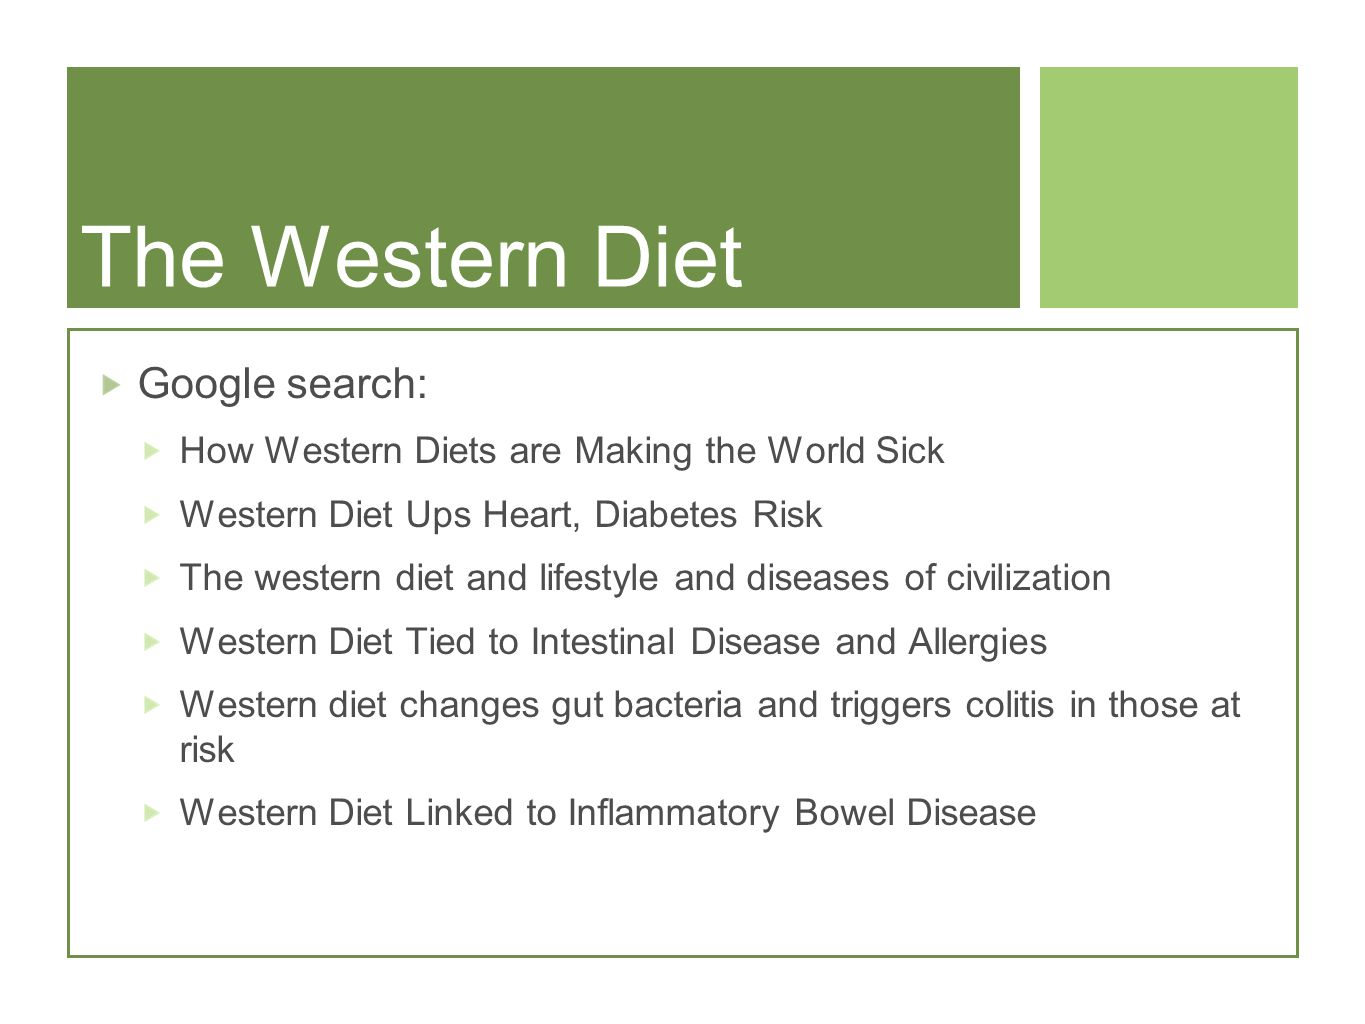 The Western Diet Google search: How Western Diets are Making the World Sick Western Diet Ups Heart, Diabetes Risk The western diet and lifestyle and diseases of civilization Western Diet Tied to Intestinal Disease and Allergies Western diet changes gut bacteria and triggers colitis in those at risk Western Diet Linked to Inflammatory Bowel Disease